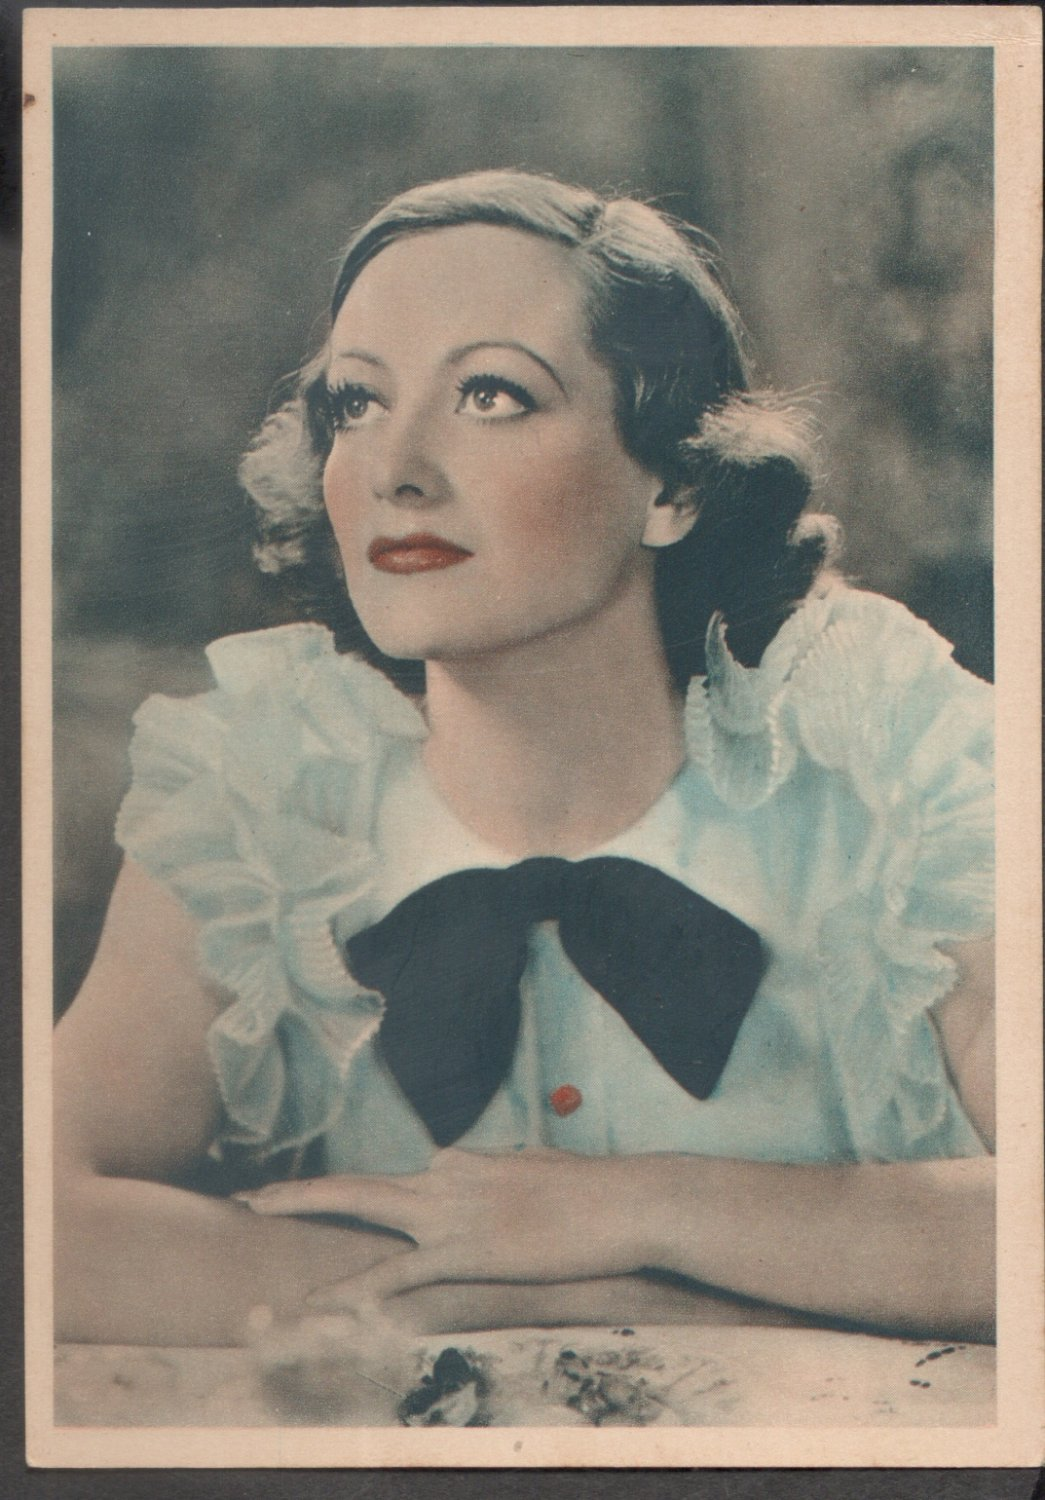 GODFREY PHILLIPS Joan Crawford MINT CARD